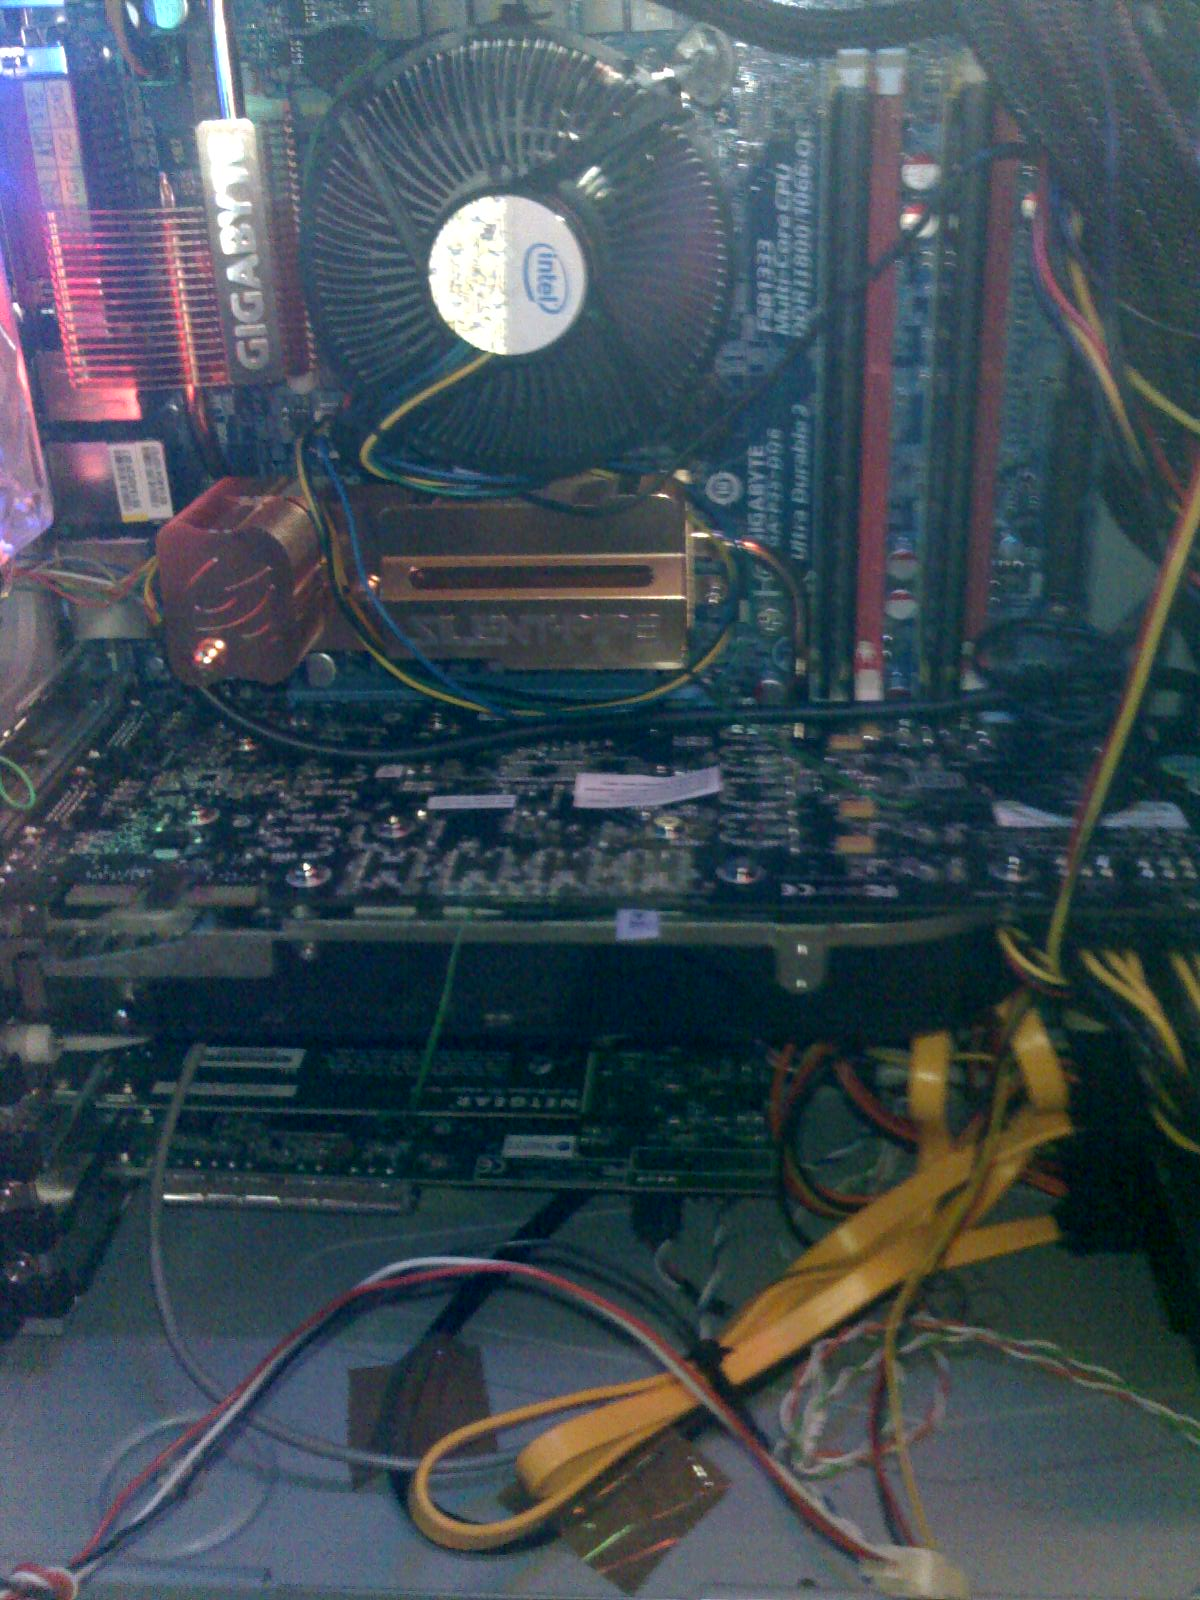 the XFX 8800GTX and cpu